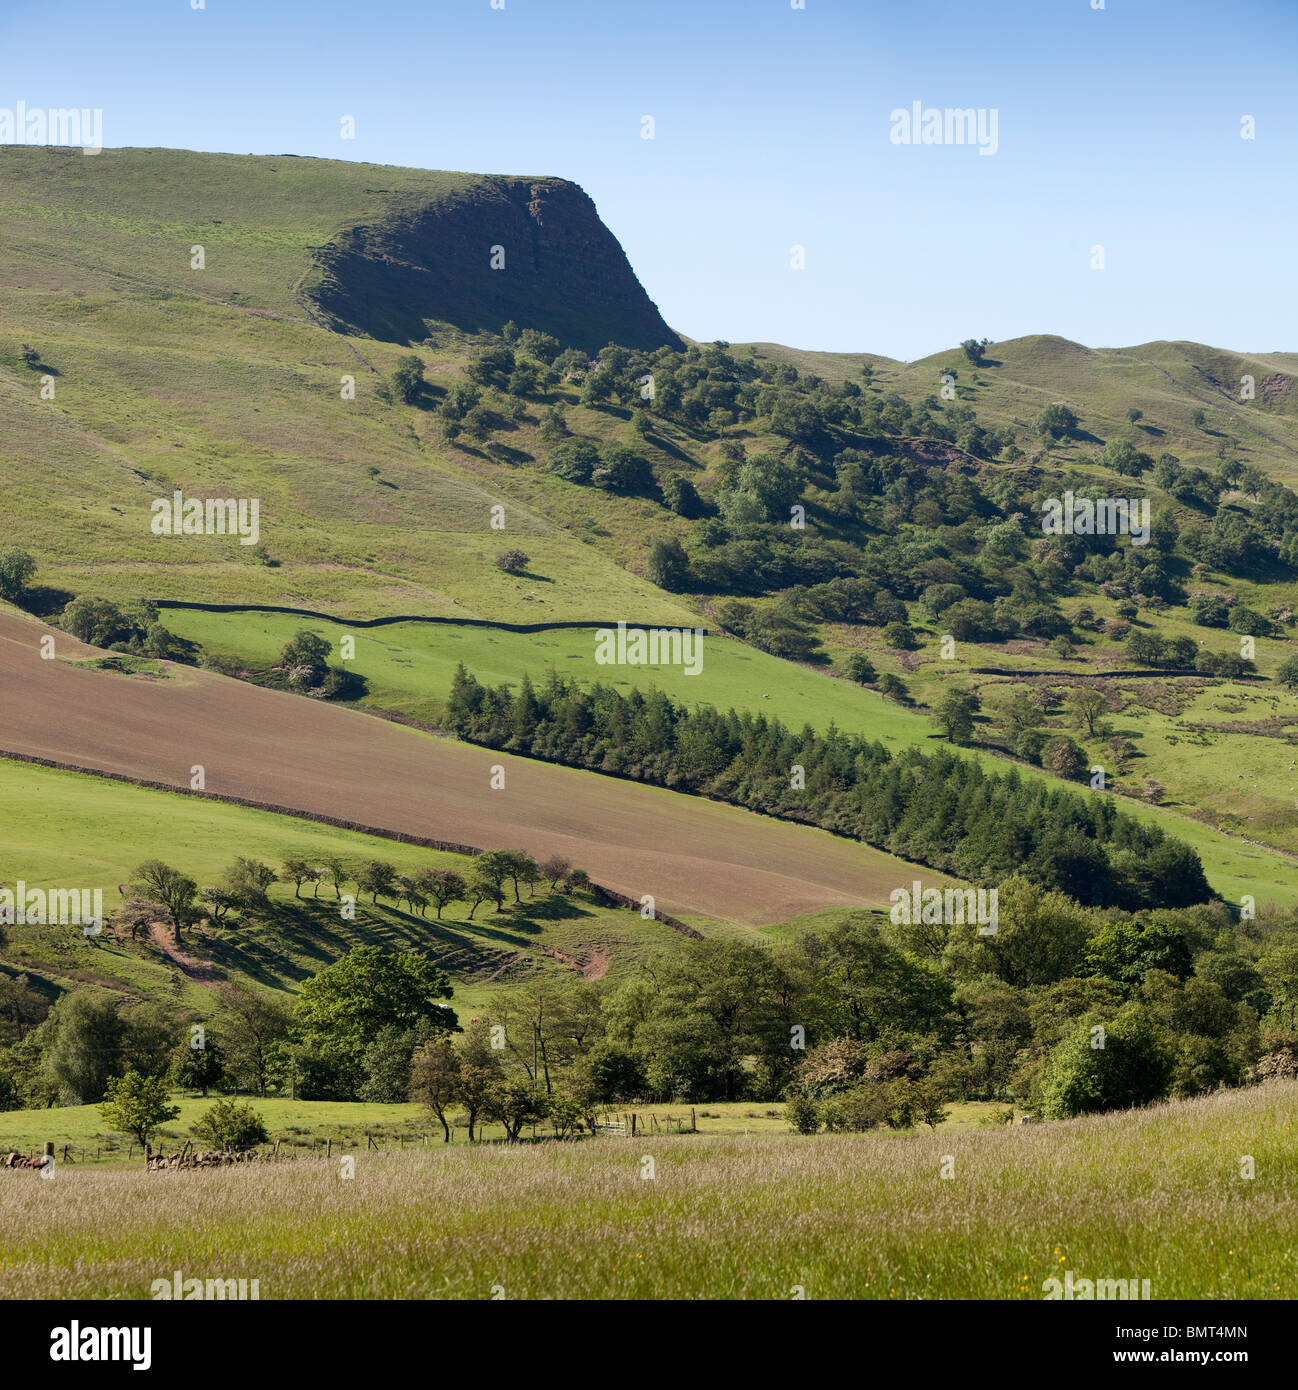 UK, England, Derbyshire, Vale of Edale, Nether Booth, farmland below Back Tor - Stock Image